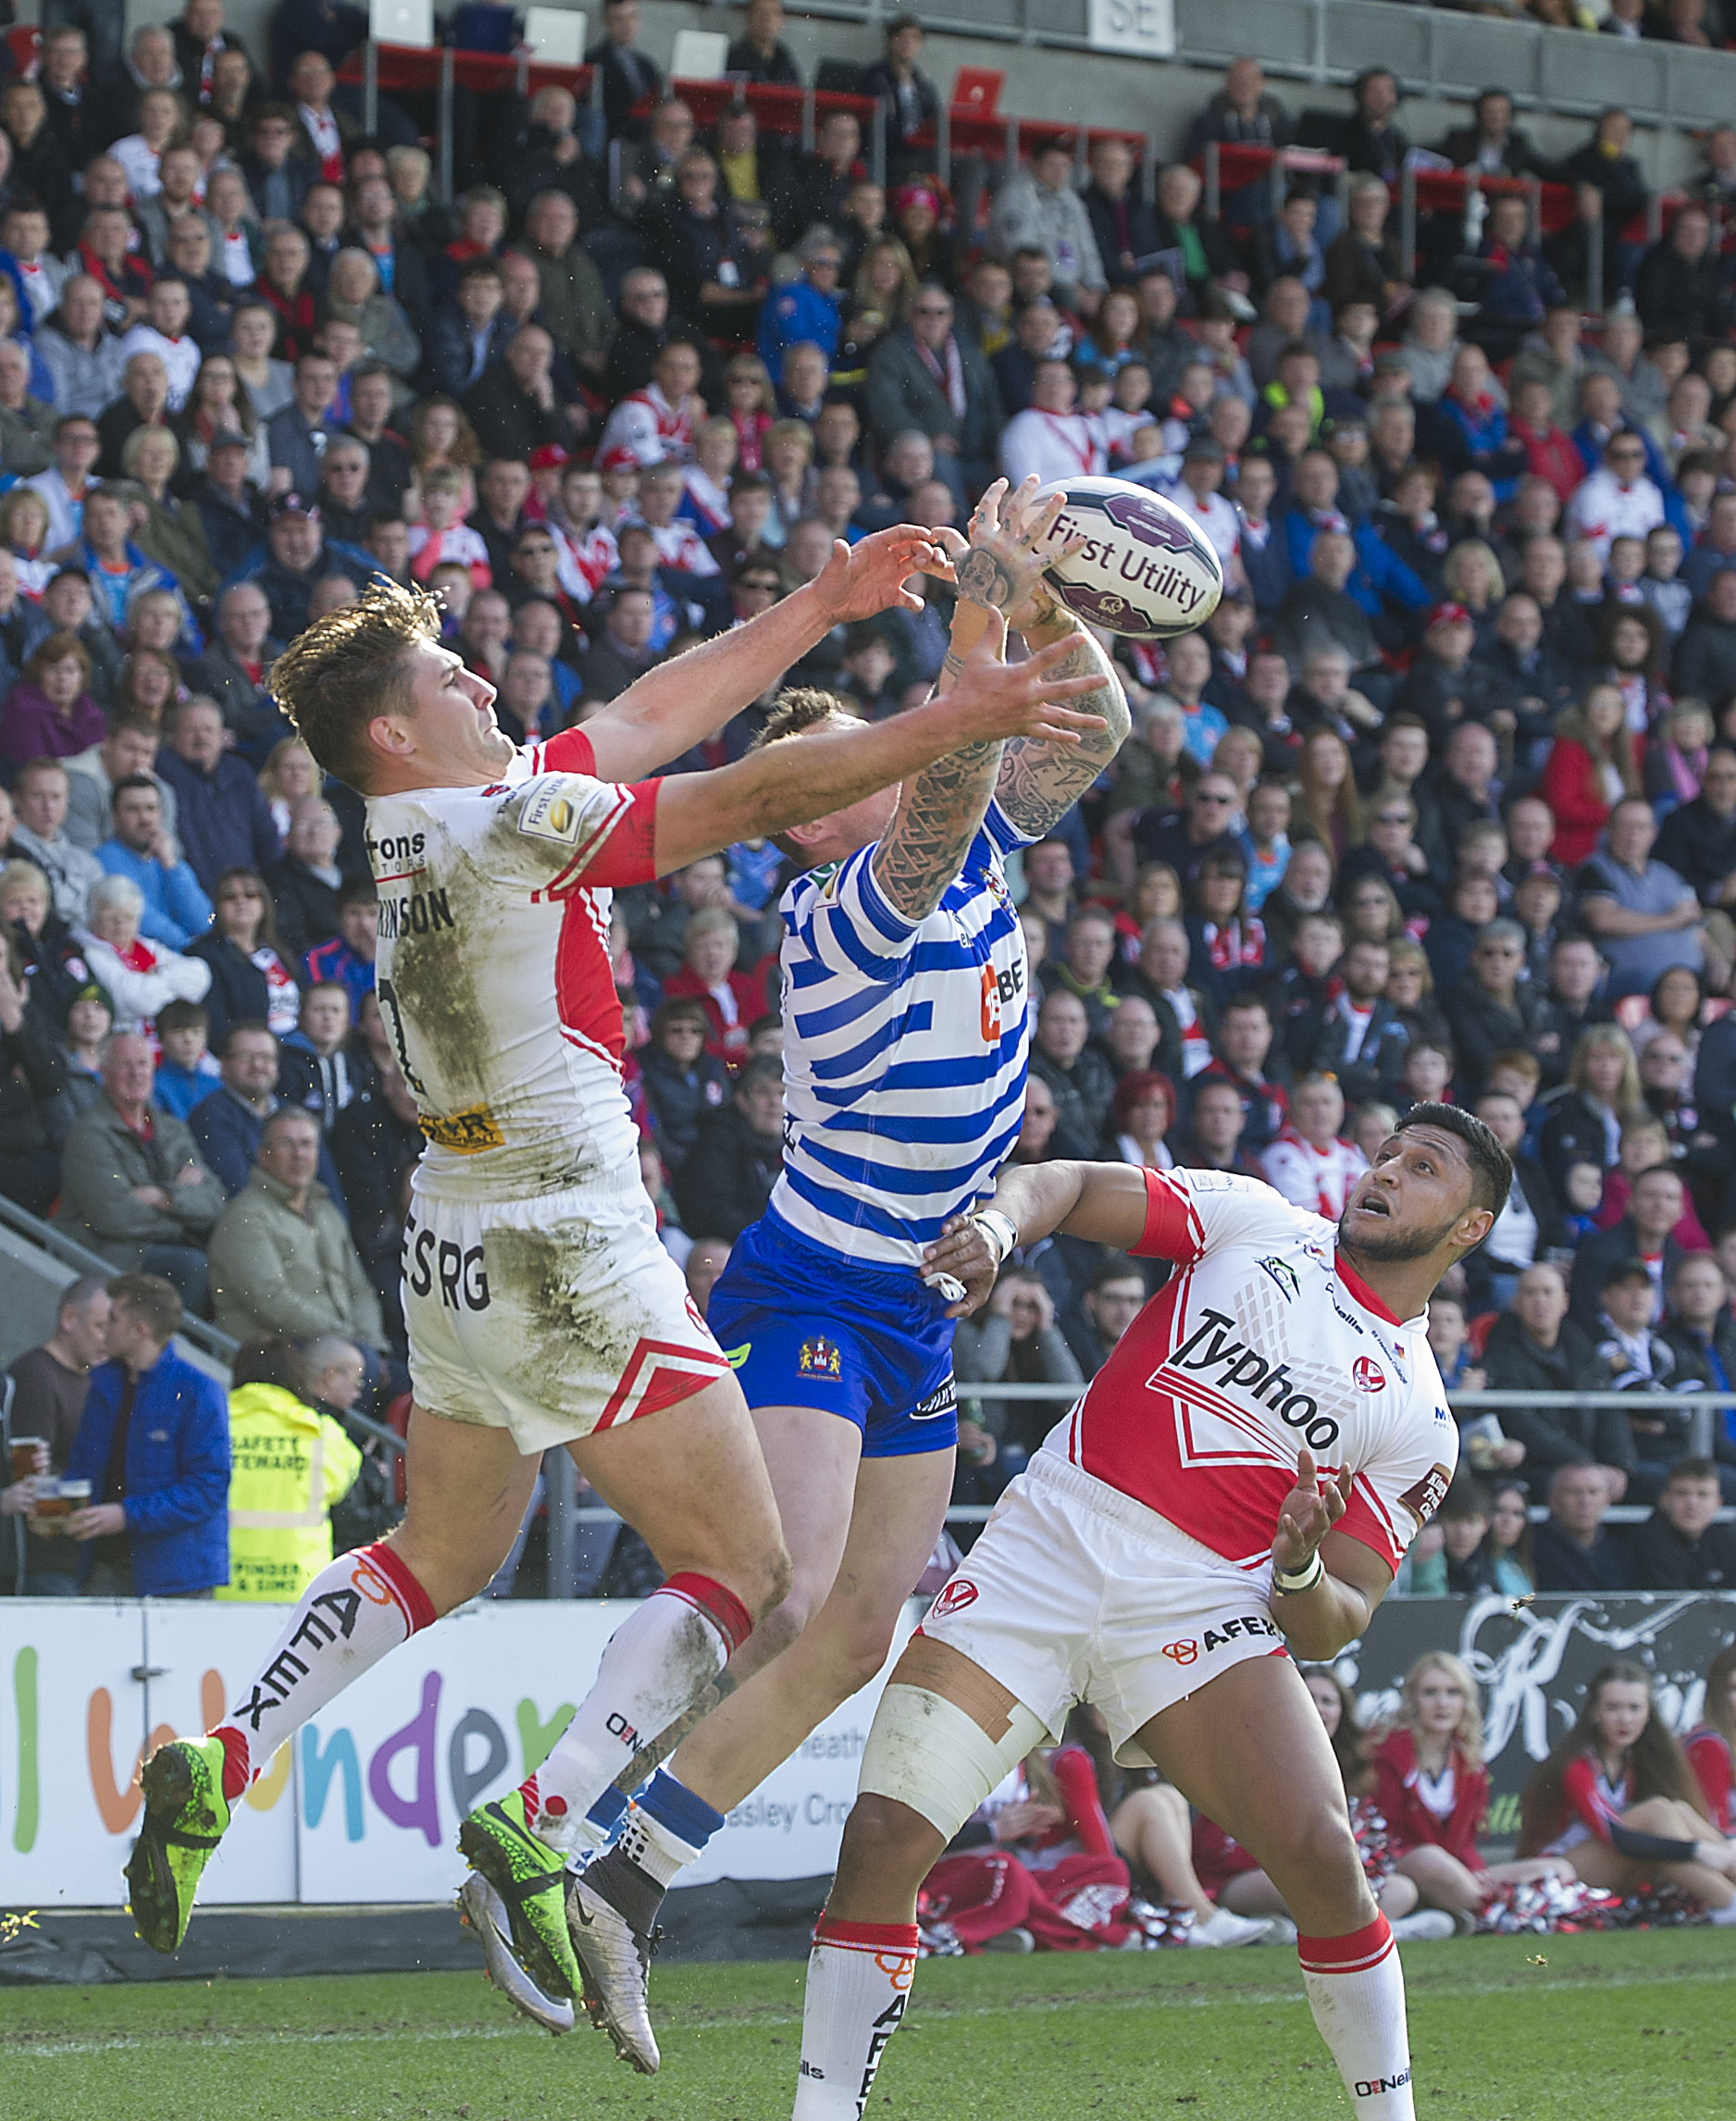 Saints will play Wigan on both double-header weekends